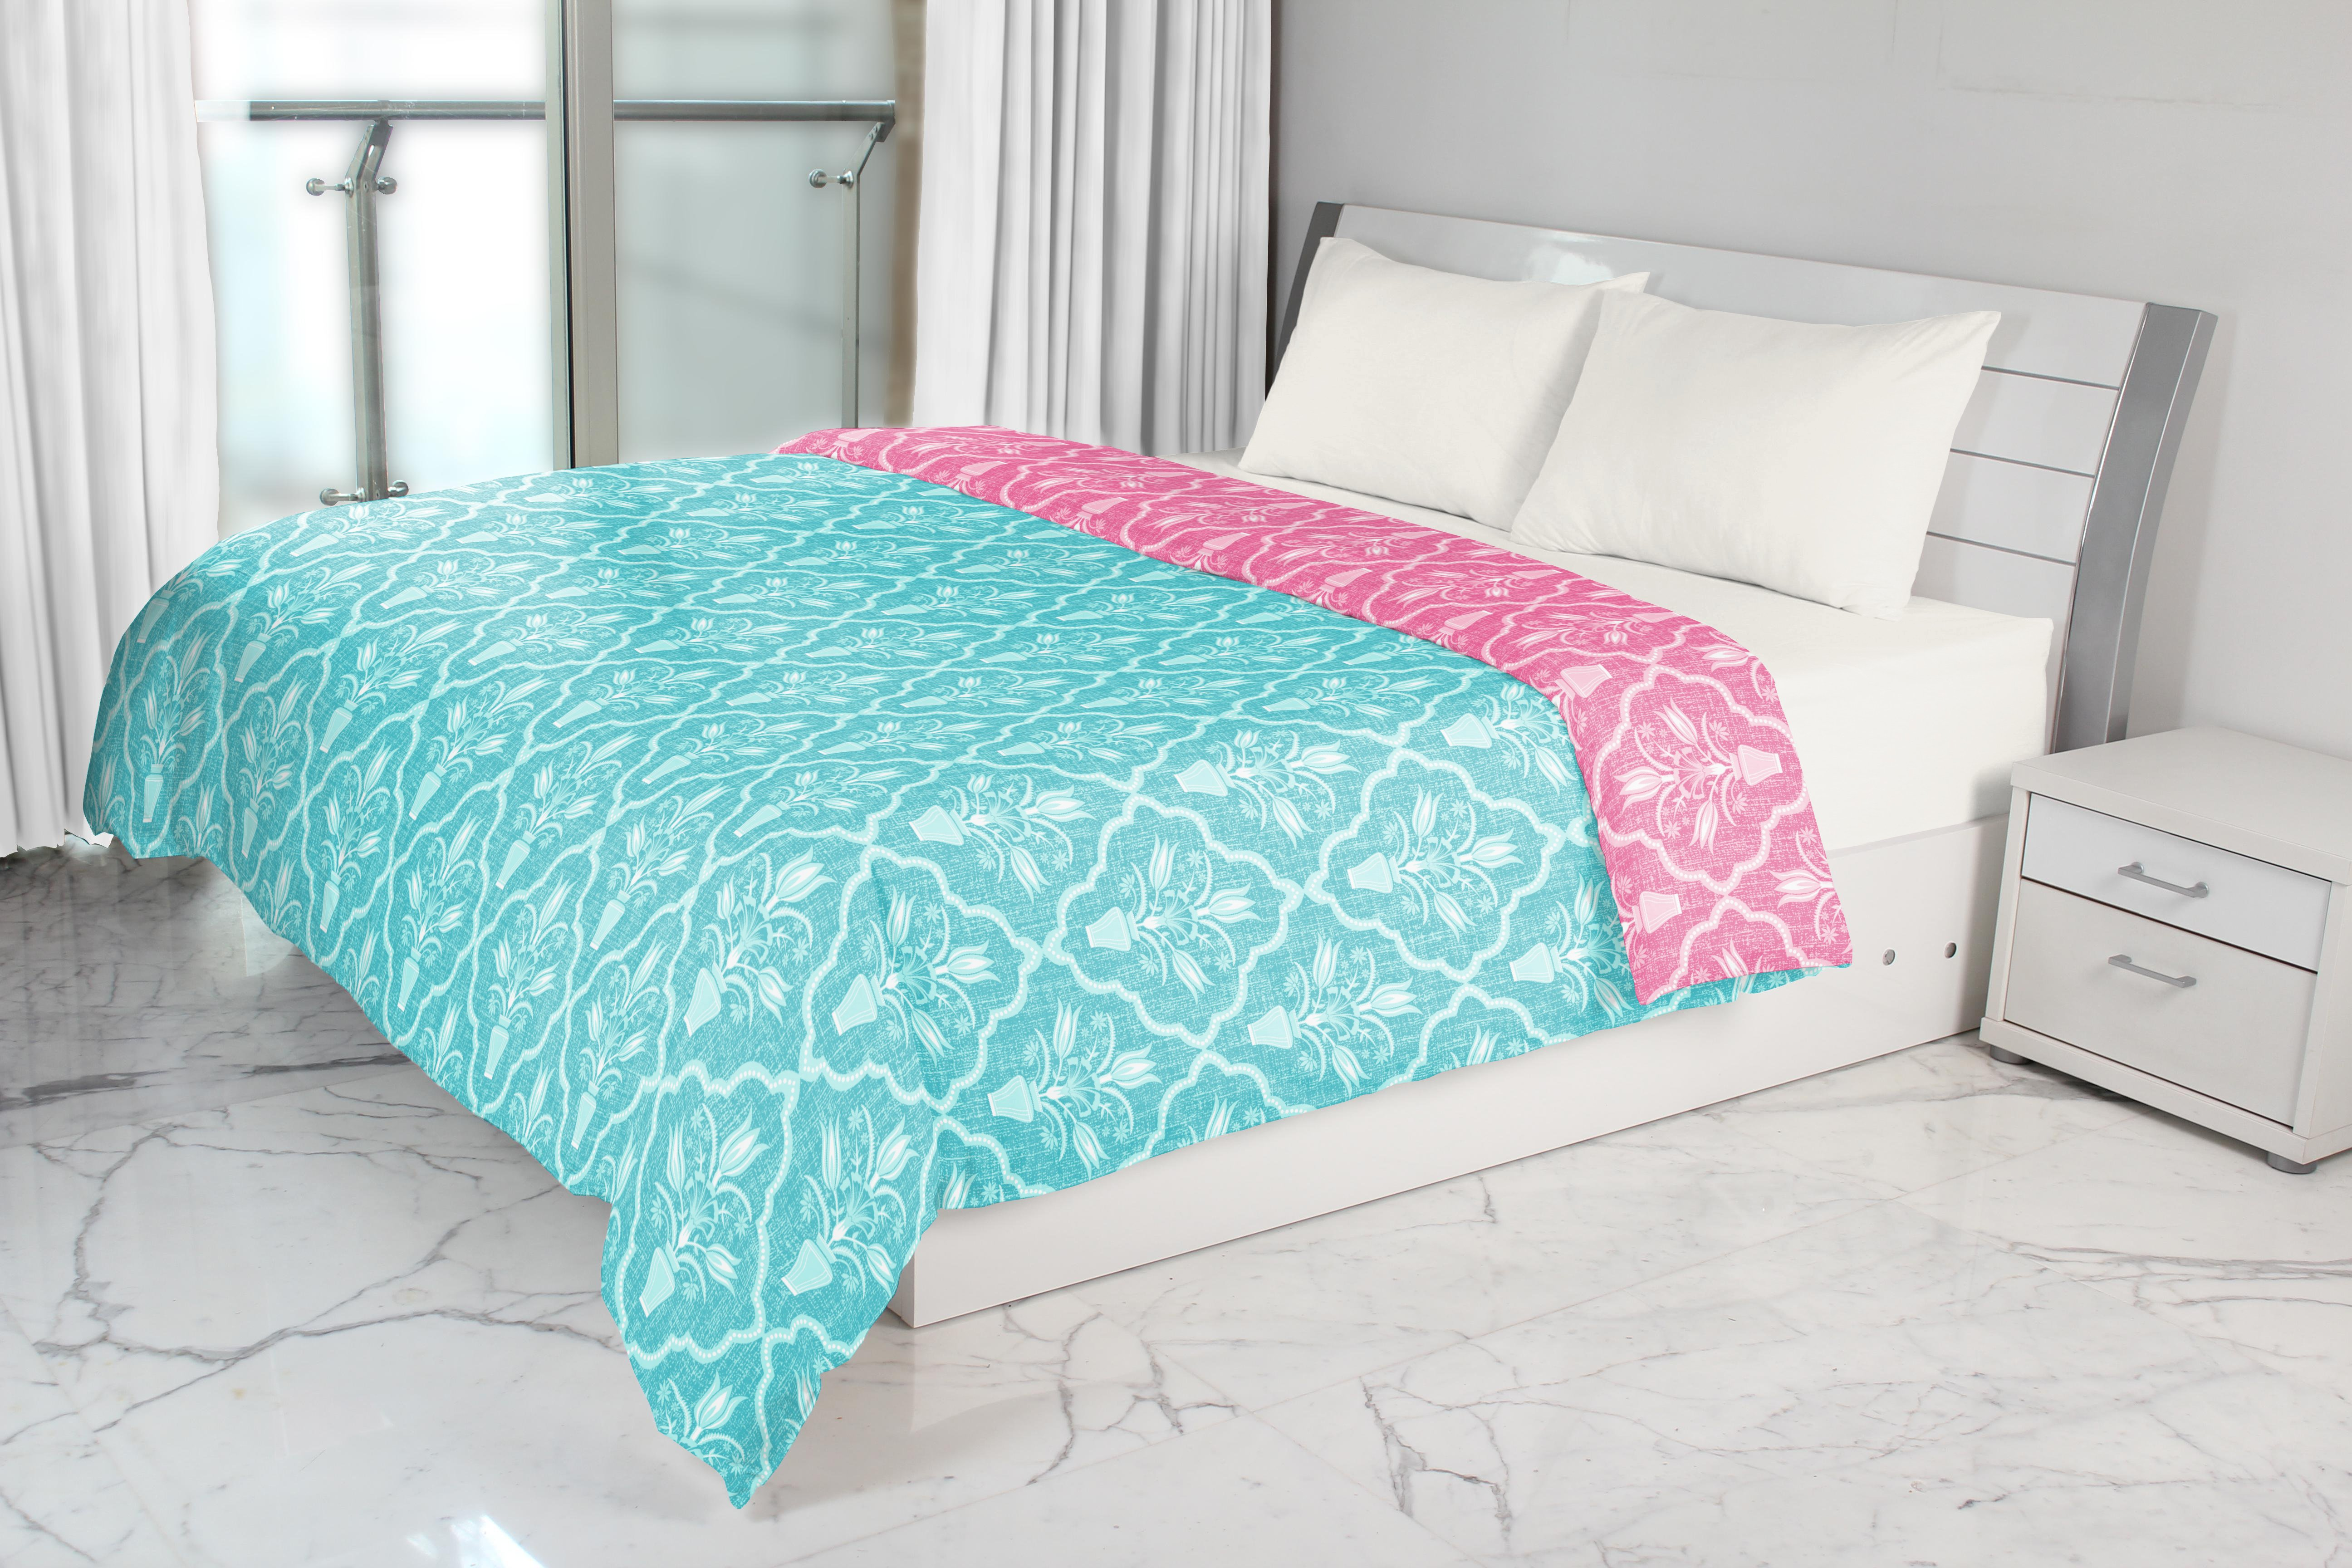 Emilia Single Dohar Rose Turquoise Cotton Dohars in Rose Turquoise Colour by Living Essence